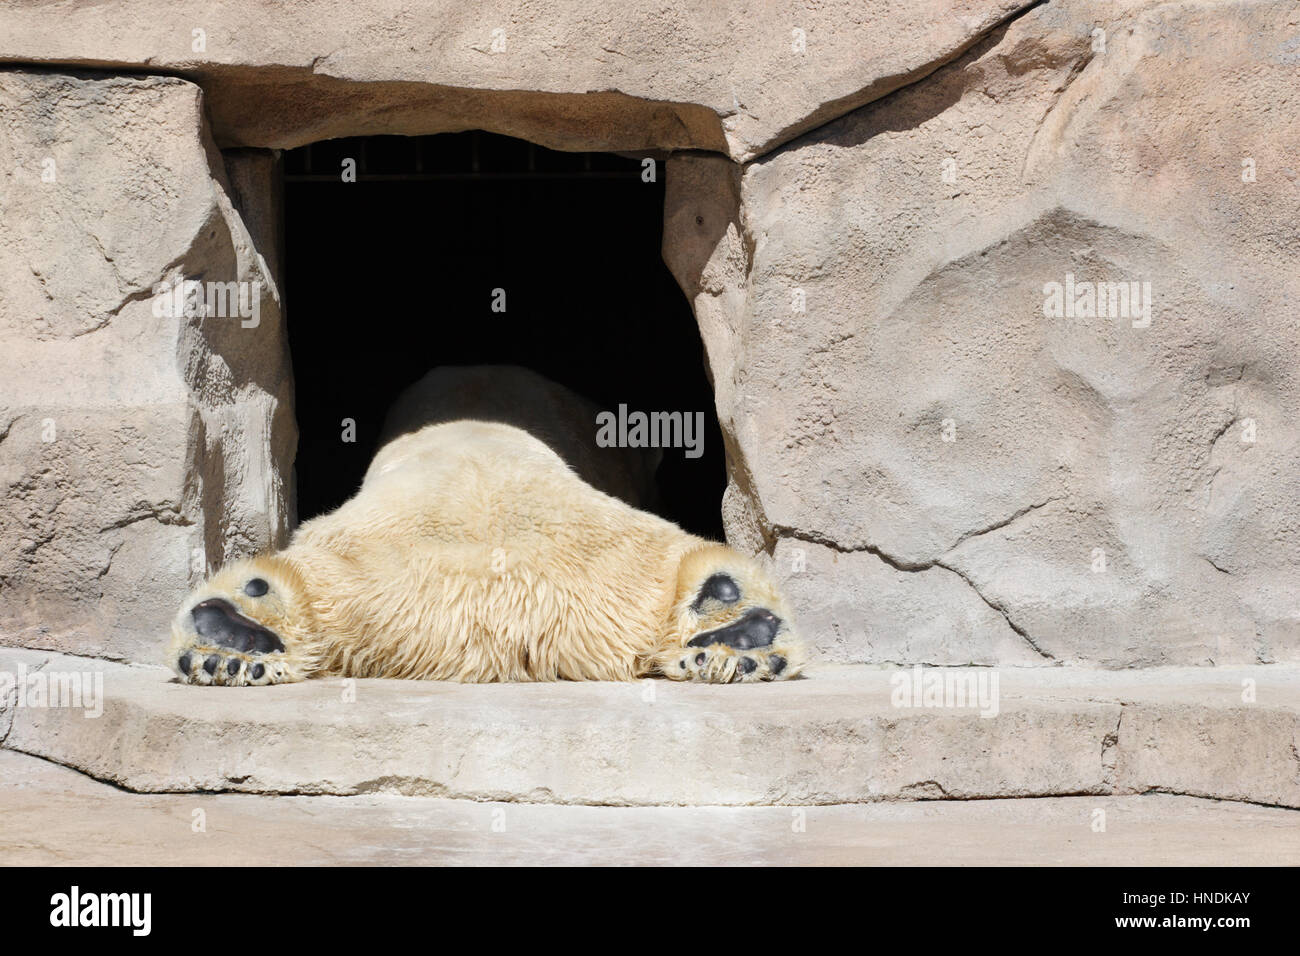 bear laying in the door to his 'cave' in a zoo - Stock Image